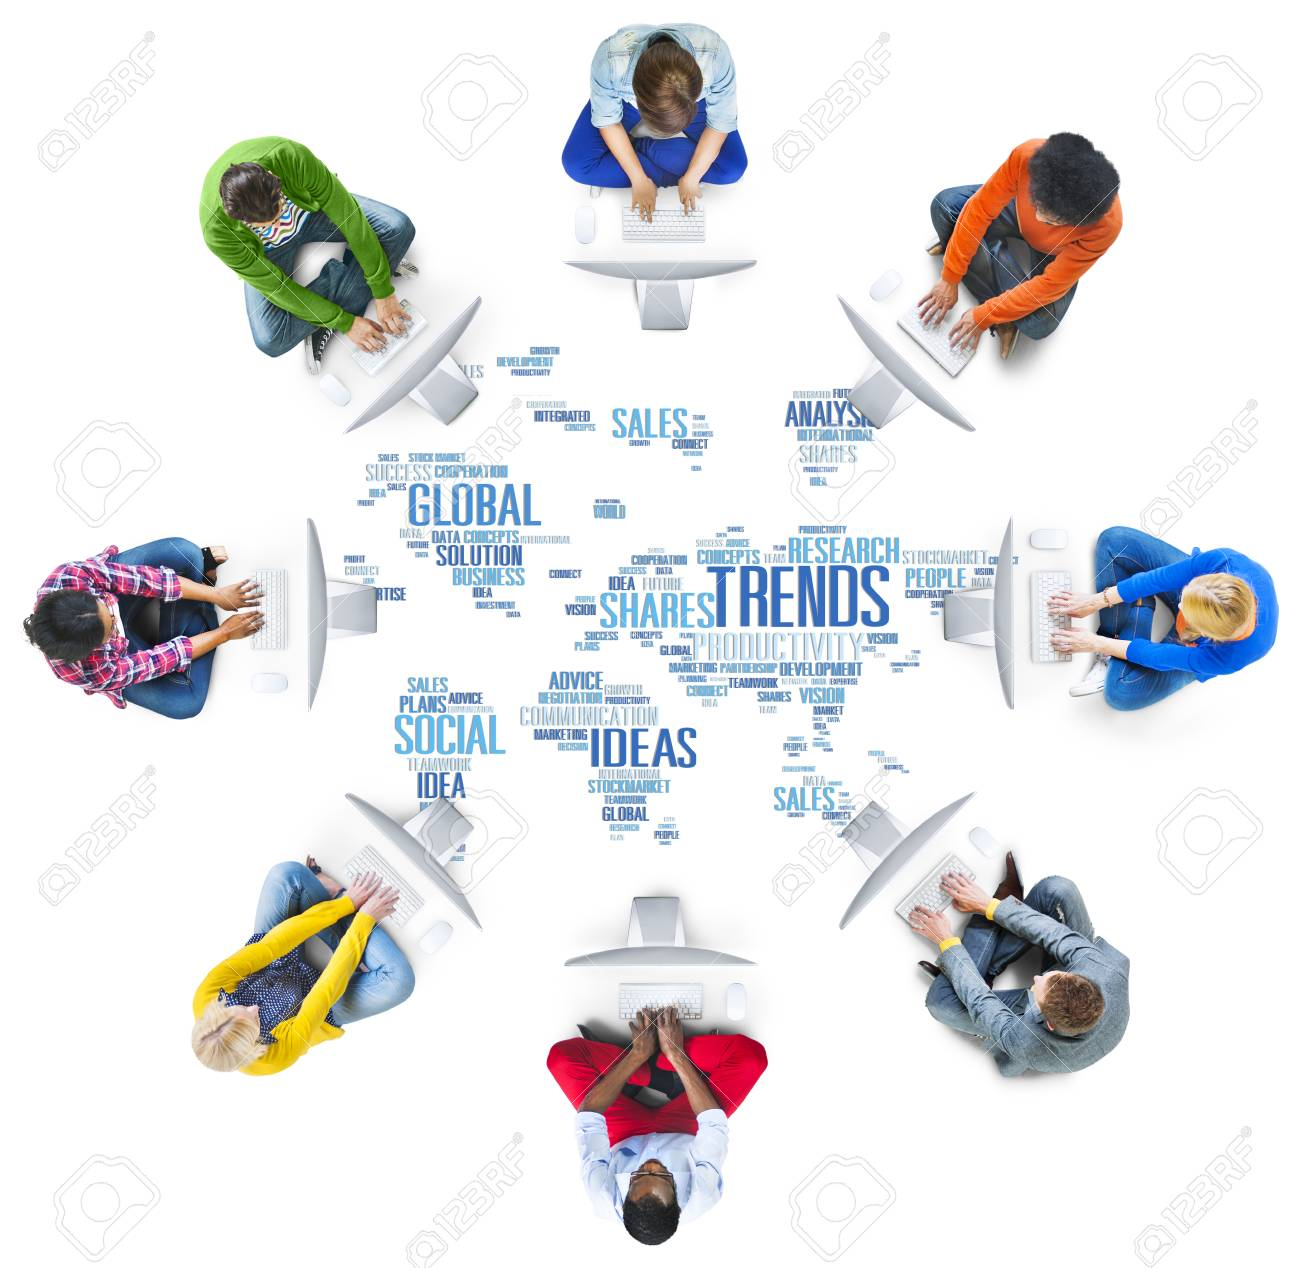 Trends world map marketing ideas social style concept stock photo stock photo trends world map marketing ideas social style concept gumiabroncs Choice Image